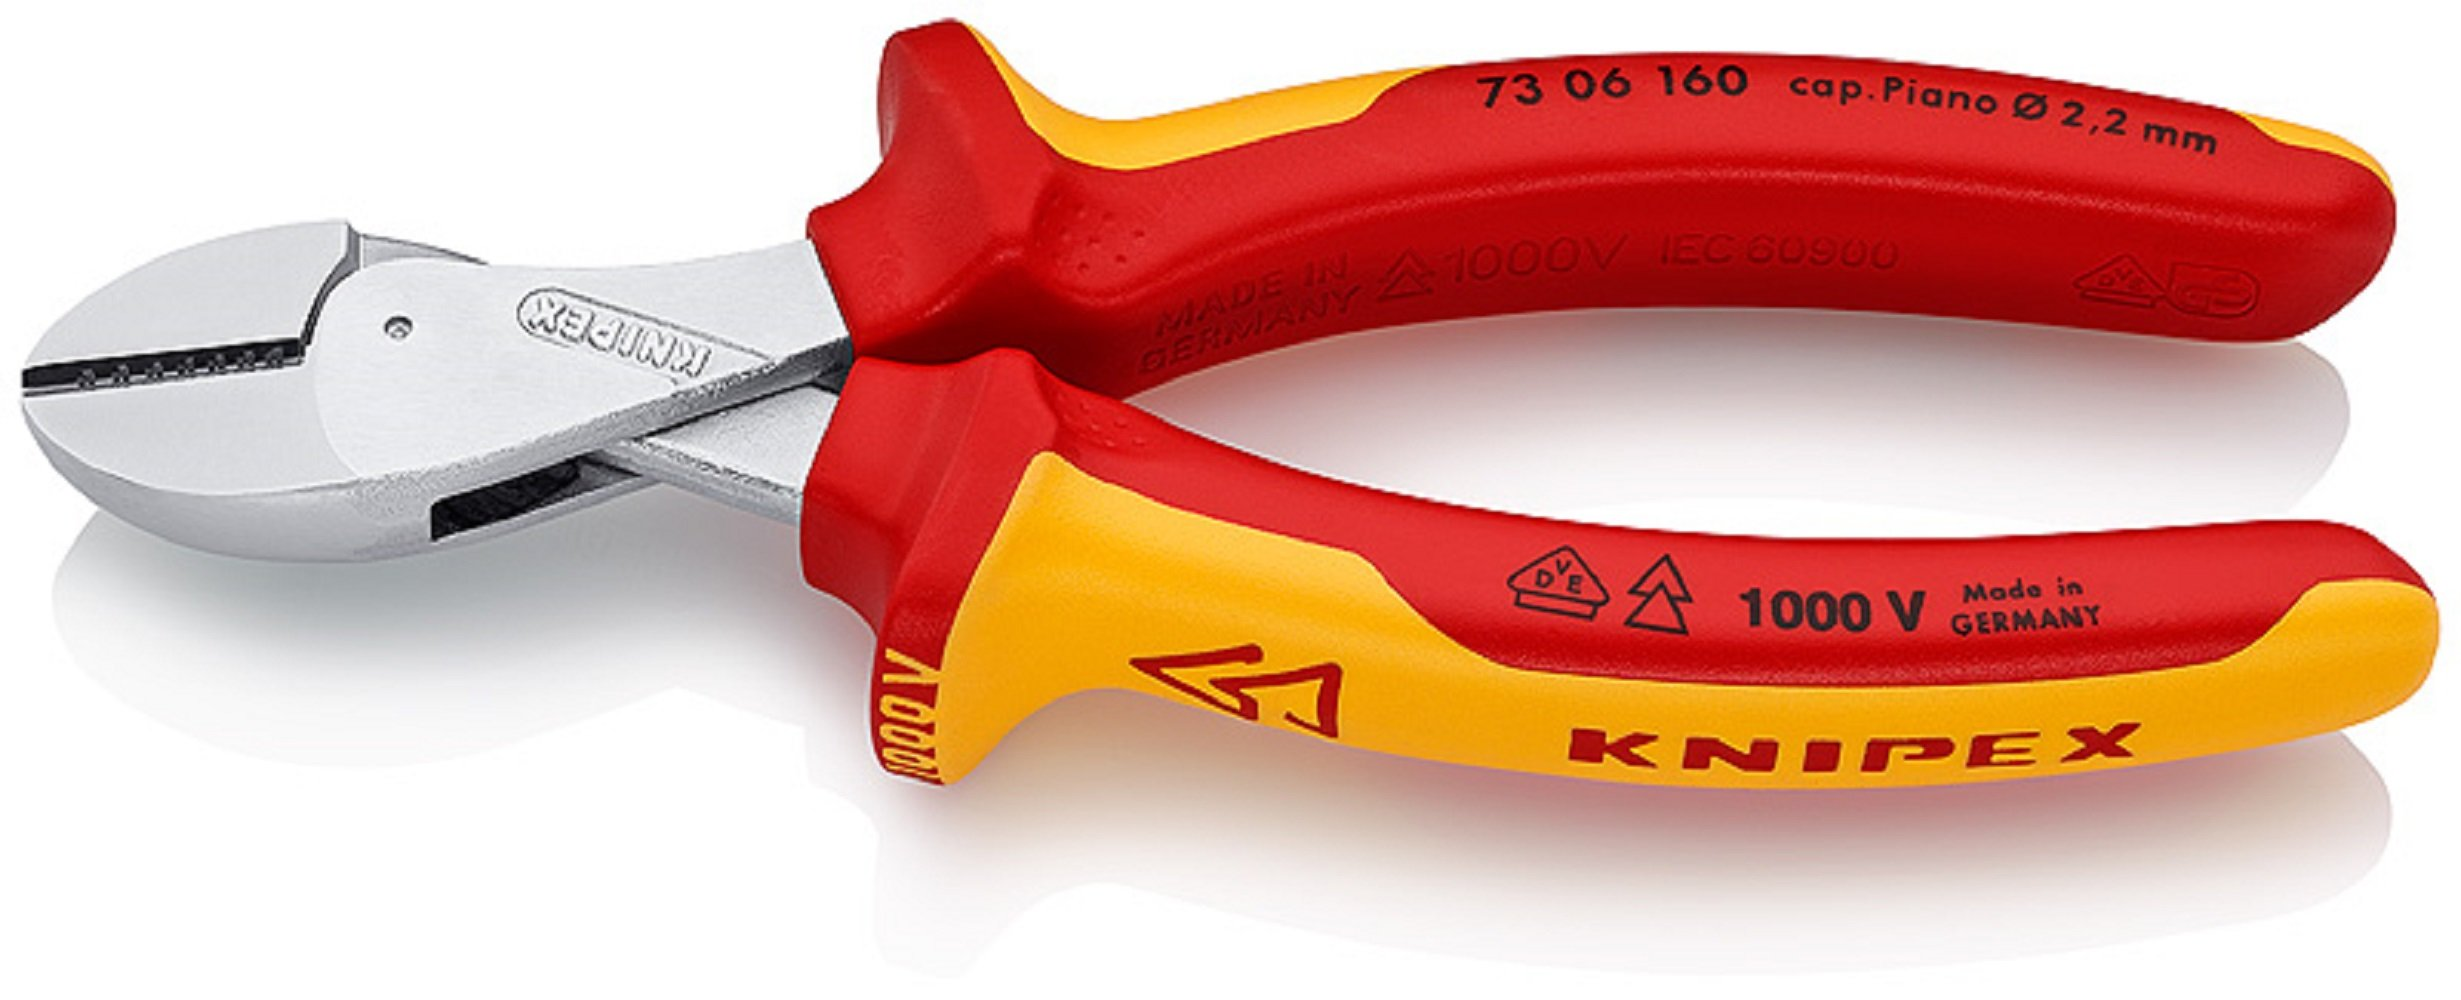 73 06 160 T BK COMPACT Diagonal Cutters ''x-Cut'' VDE-Tested with Tether Attachment Pt. In Blister Packaging